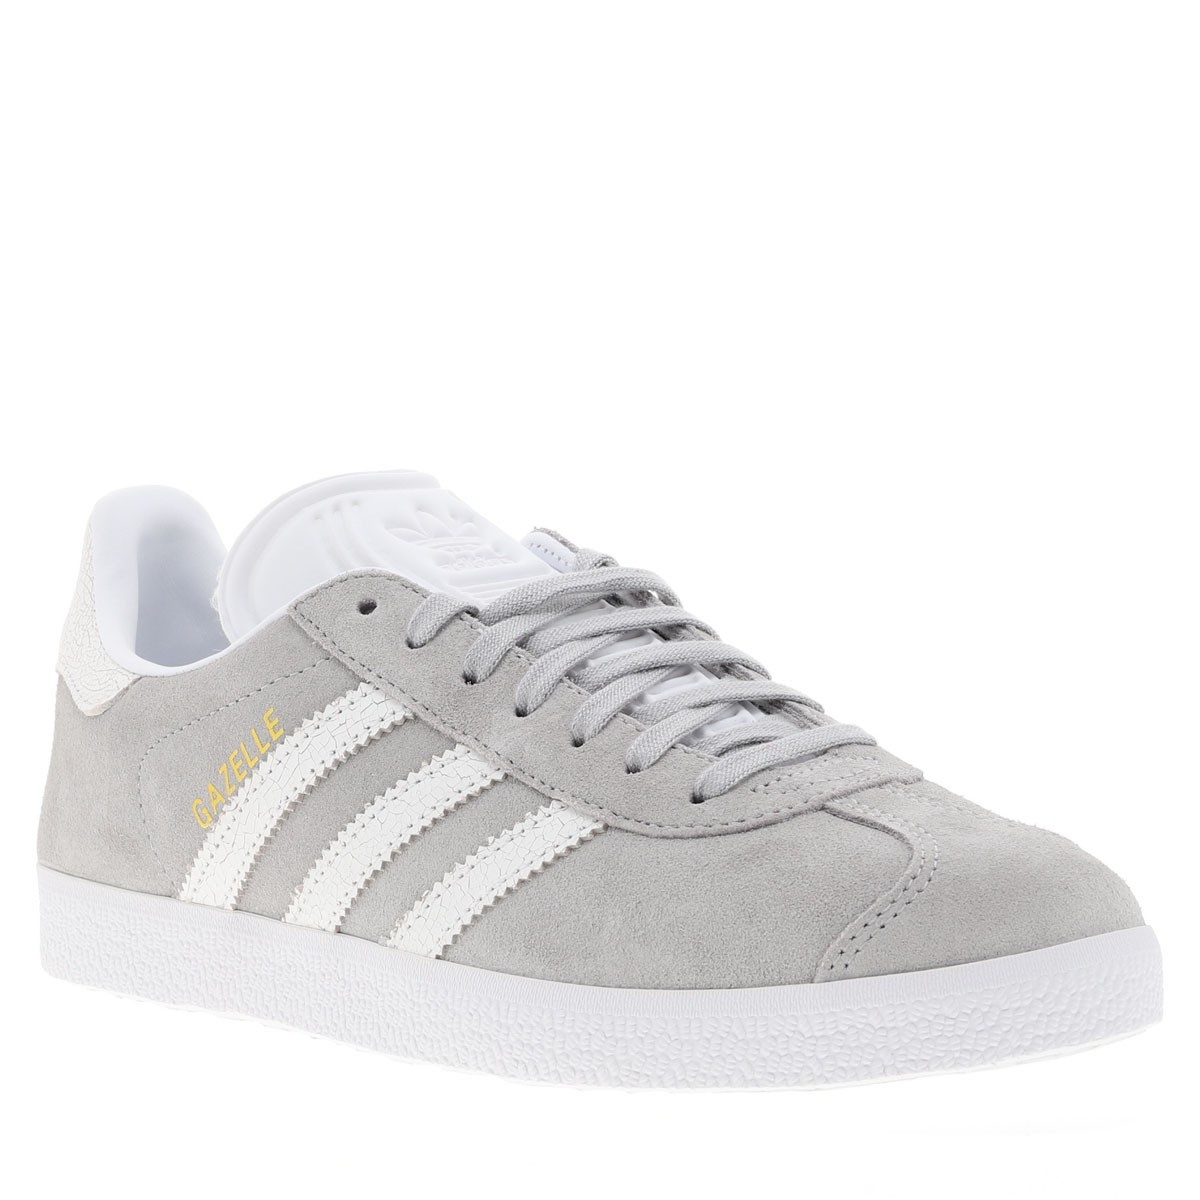 ADIDAS ORIGINALS Baskets Gazelle femme gris